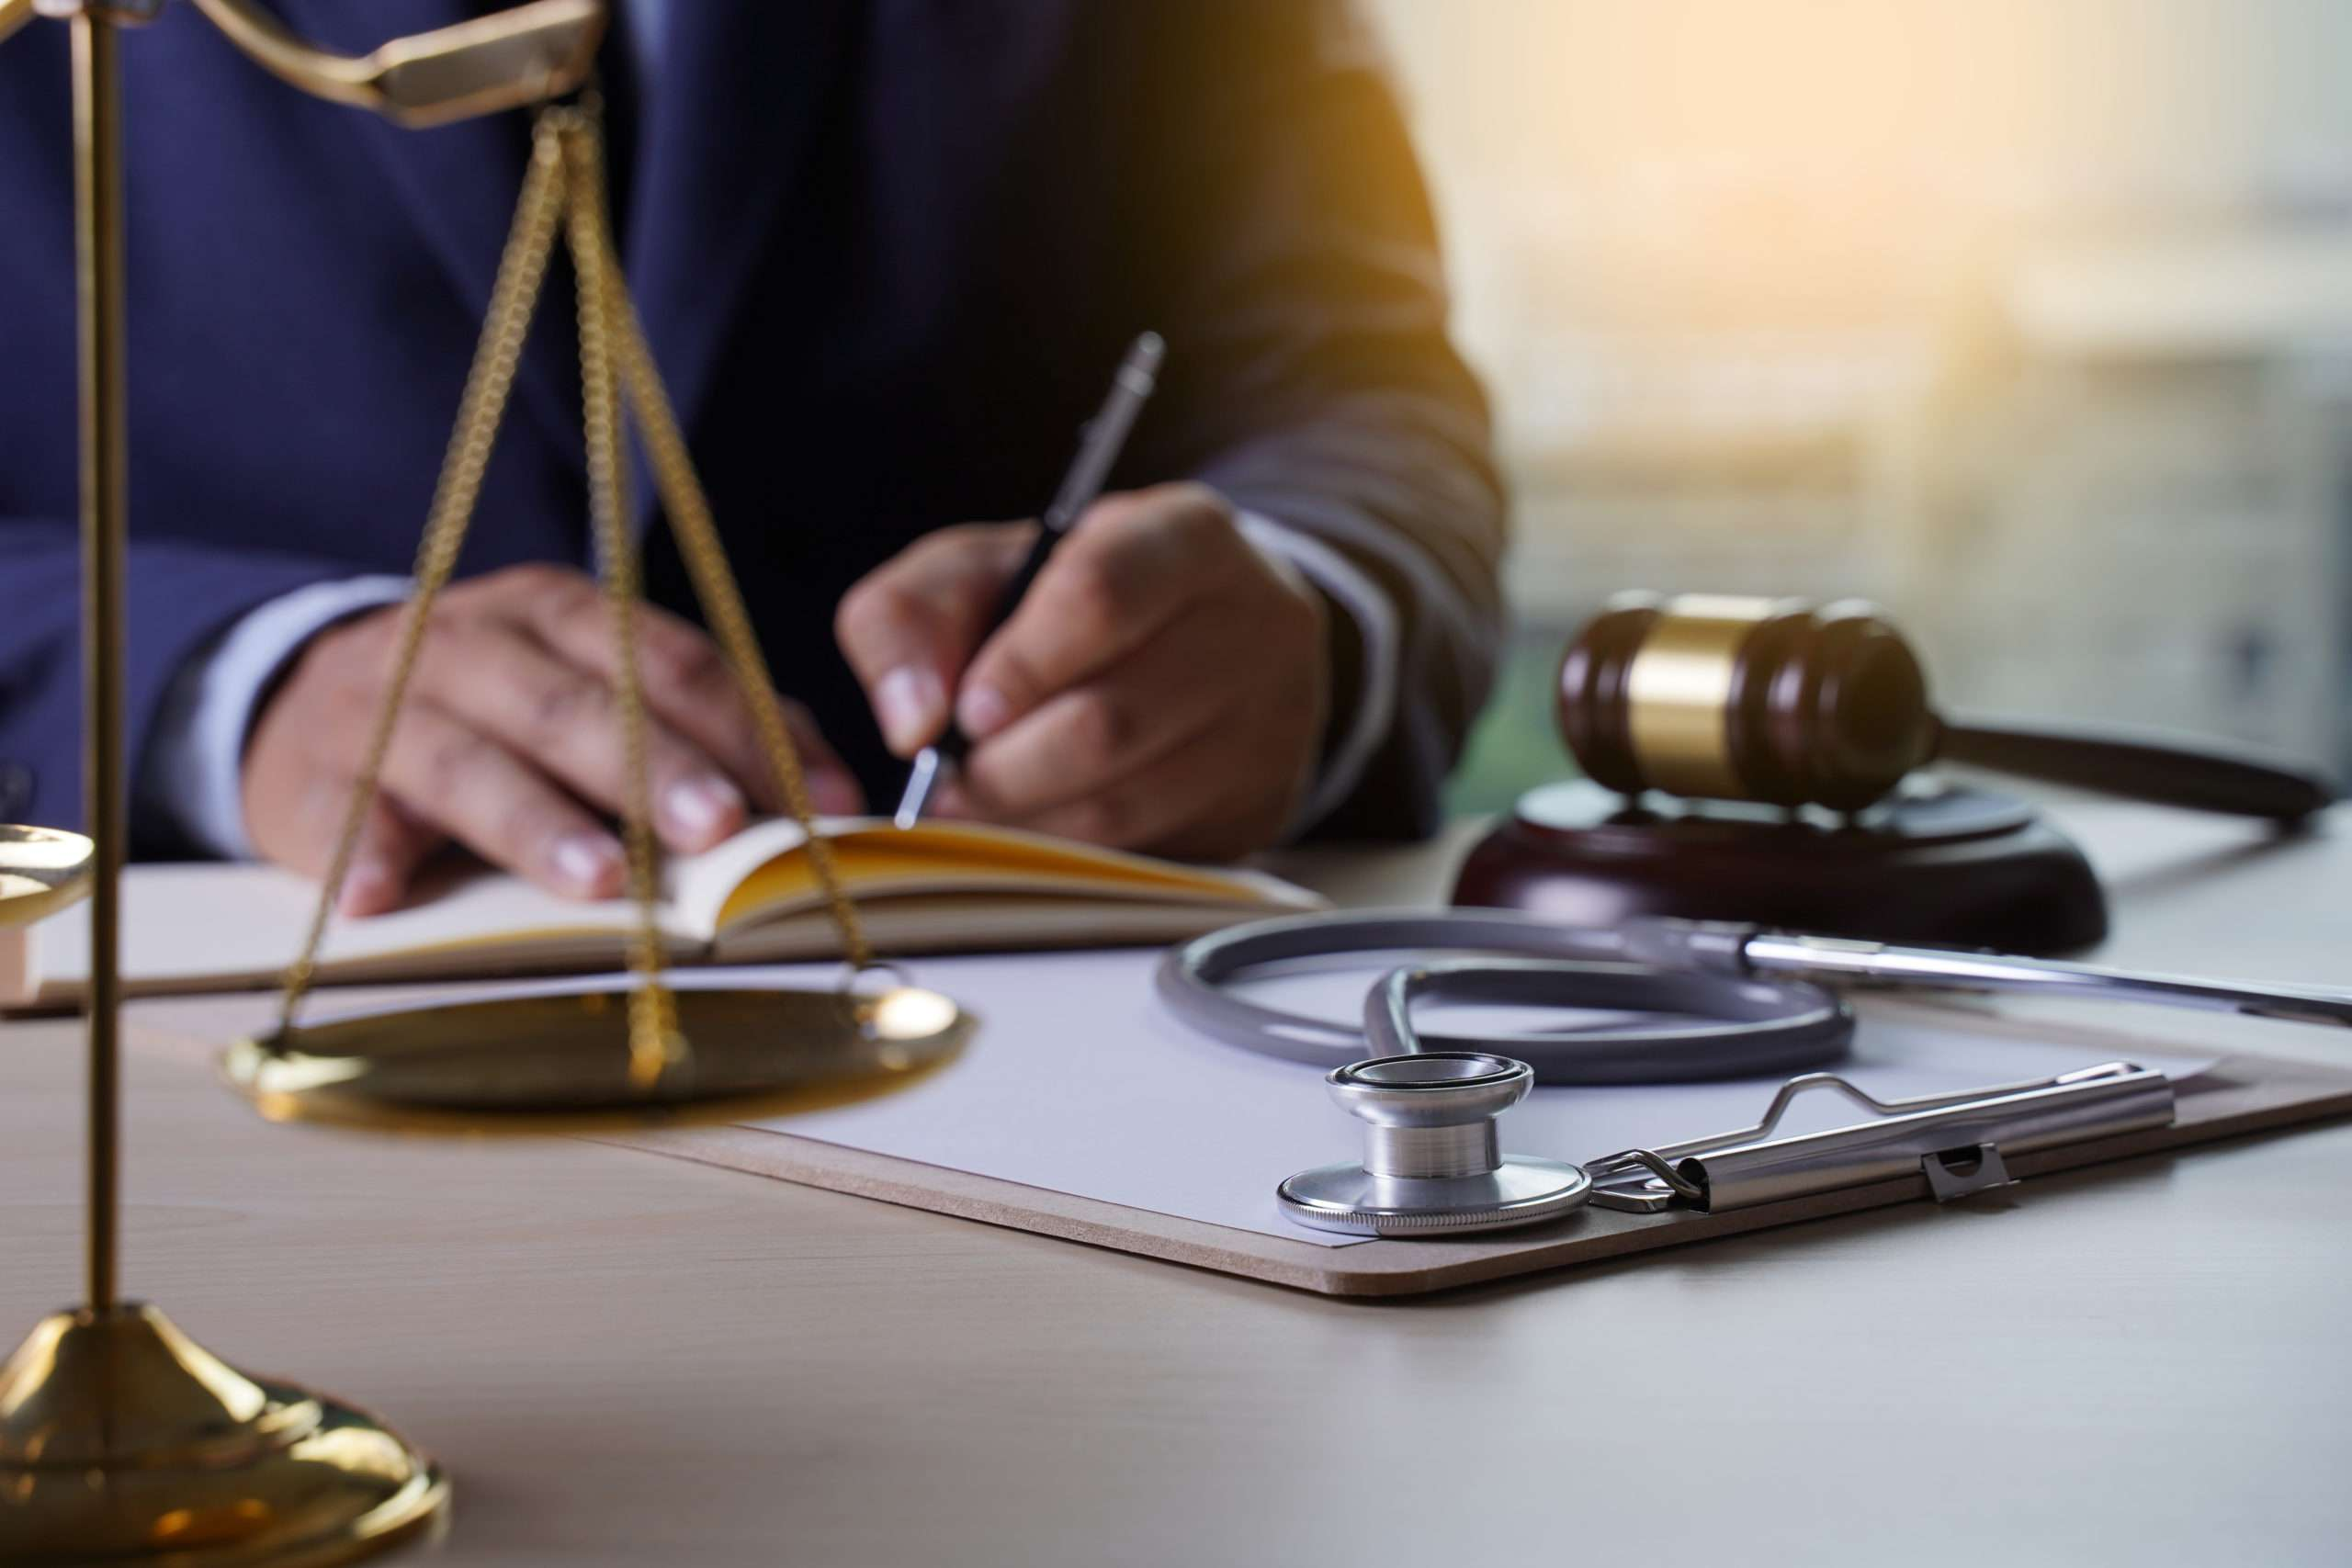 how to contact clinical negligence solicitors